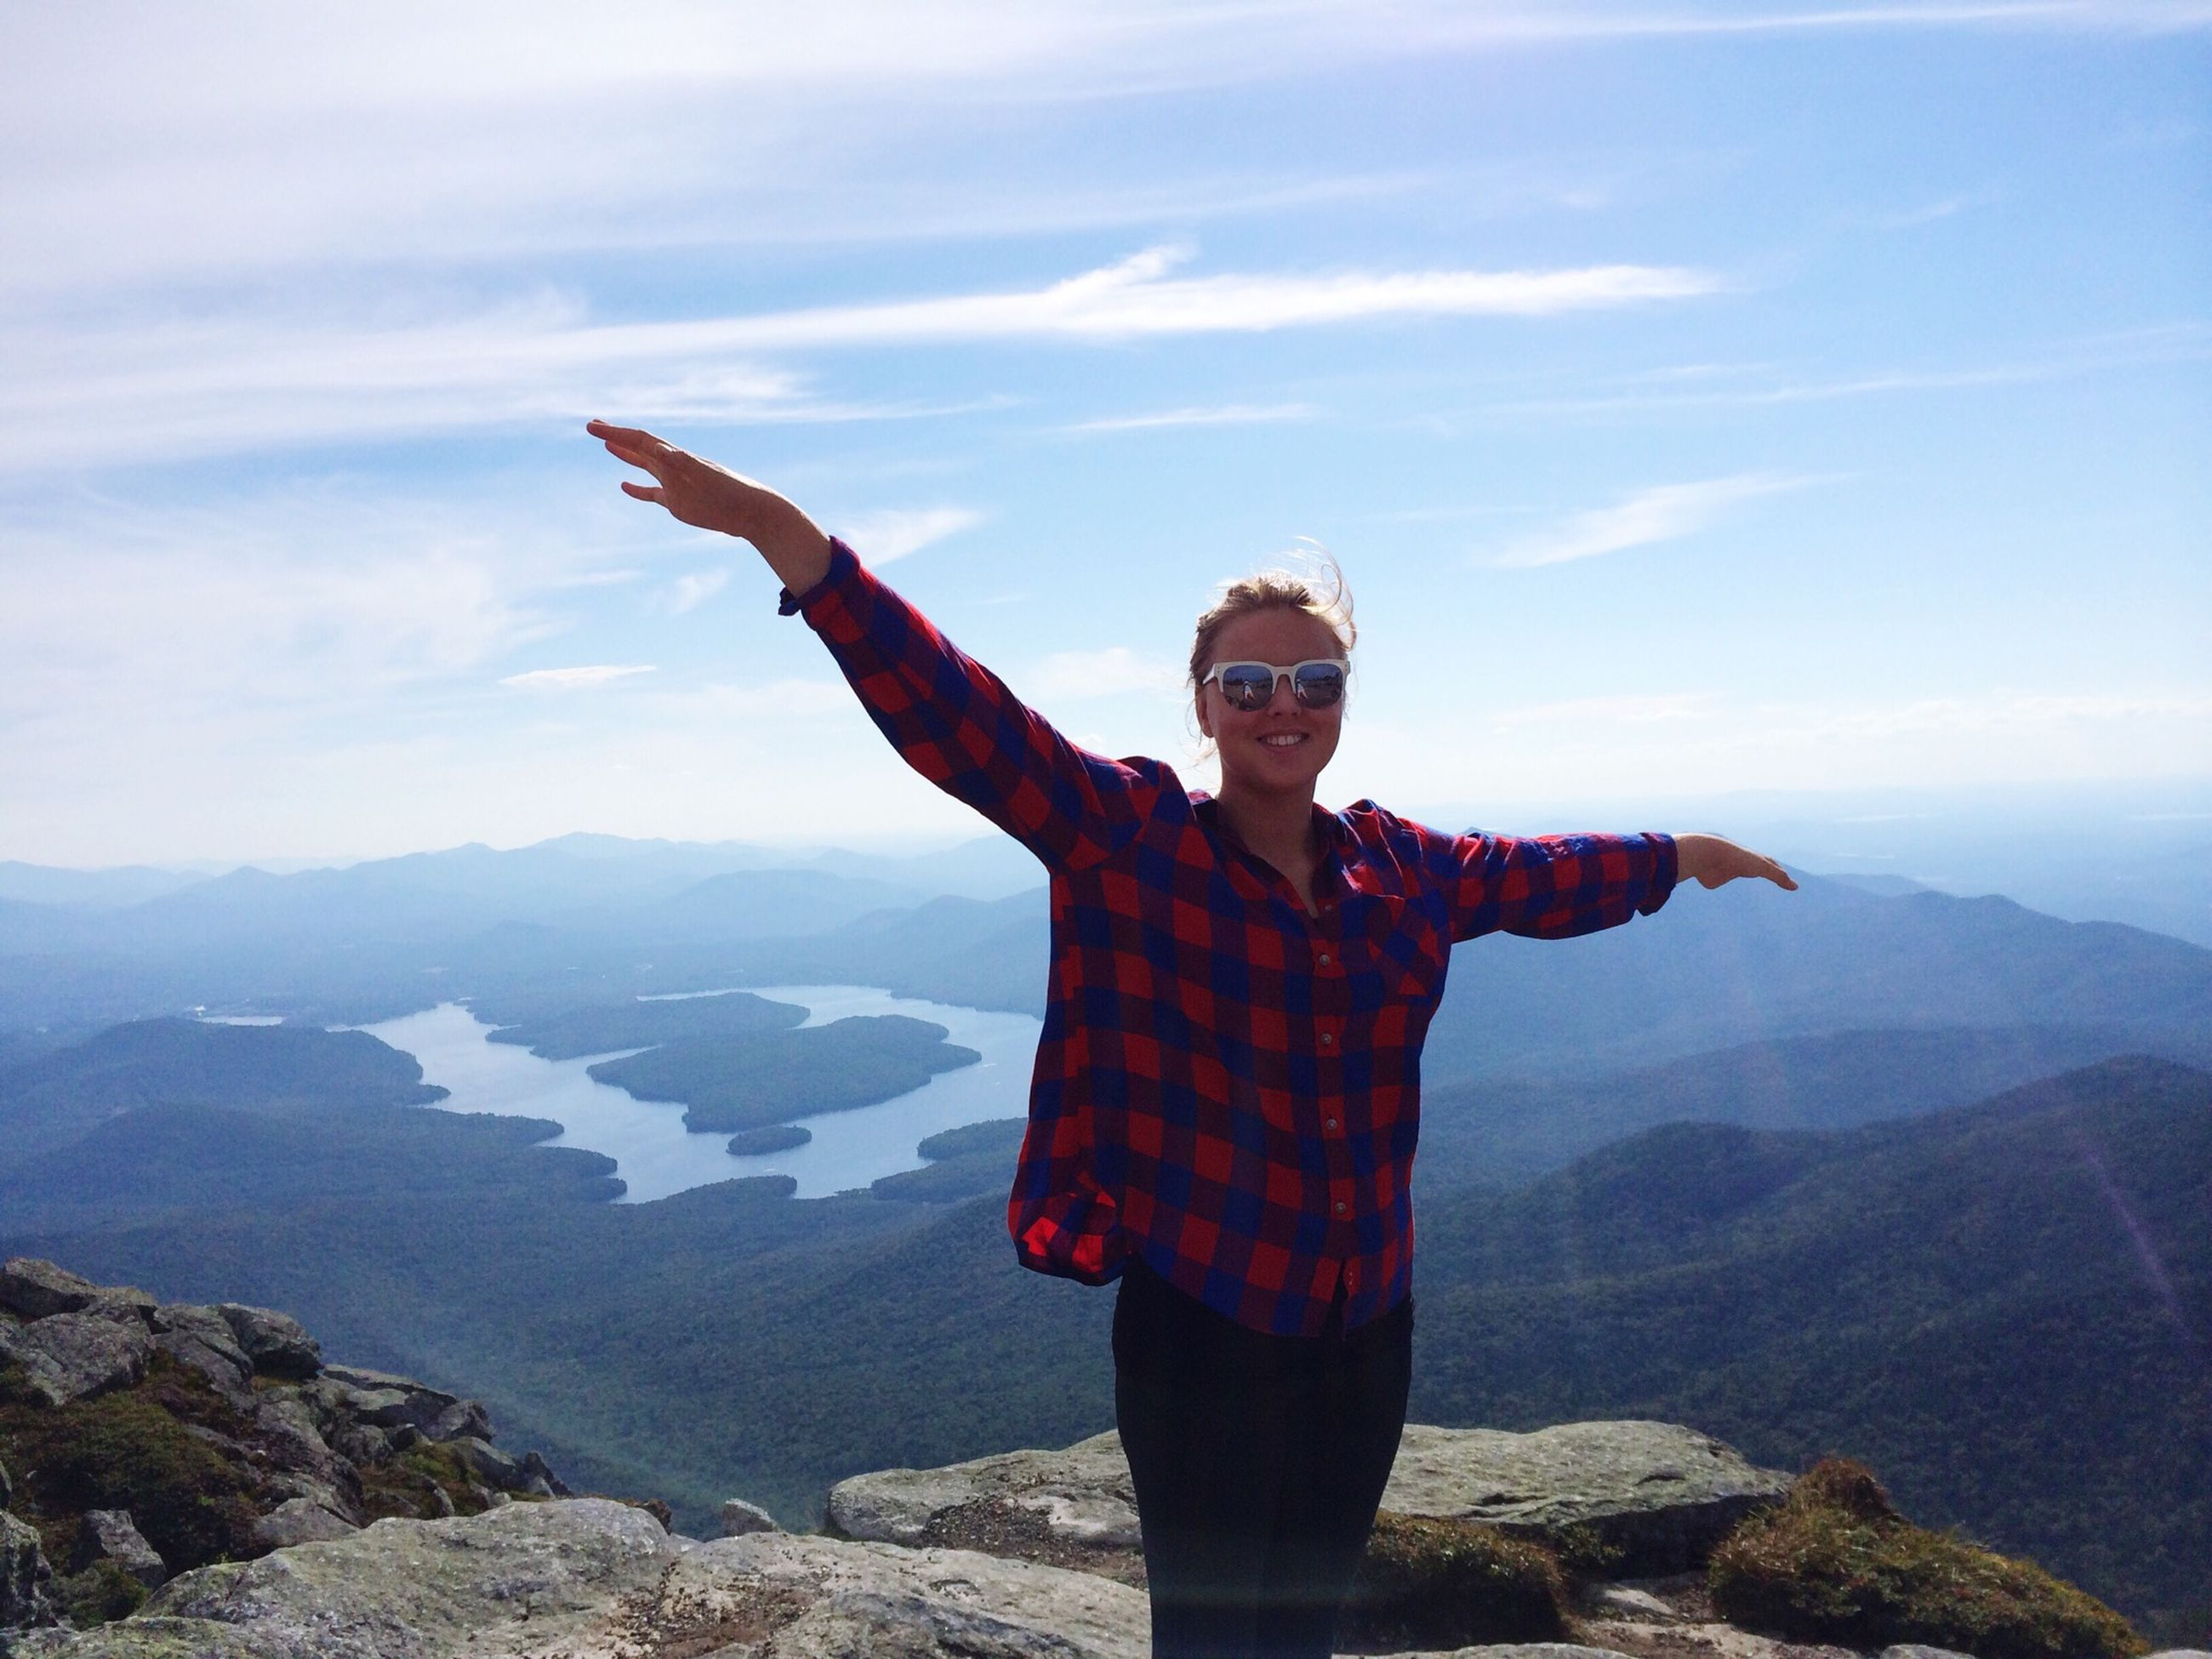 lifestyles, sky, leisure activity, standing, mountain, cloud - sky, arms outstretched, full length, casual clothing, young adult, three quarter length, arms raised, rock - object, tourism, mountain range, freedom, cloud, travel destinations